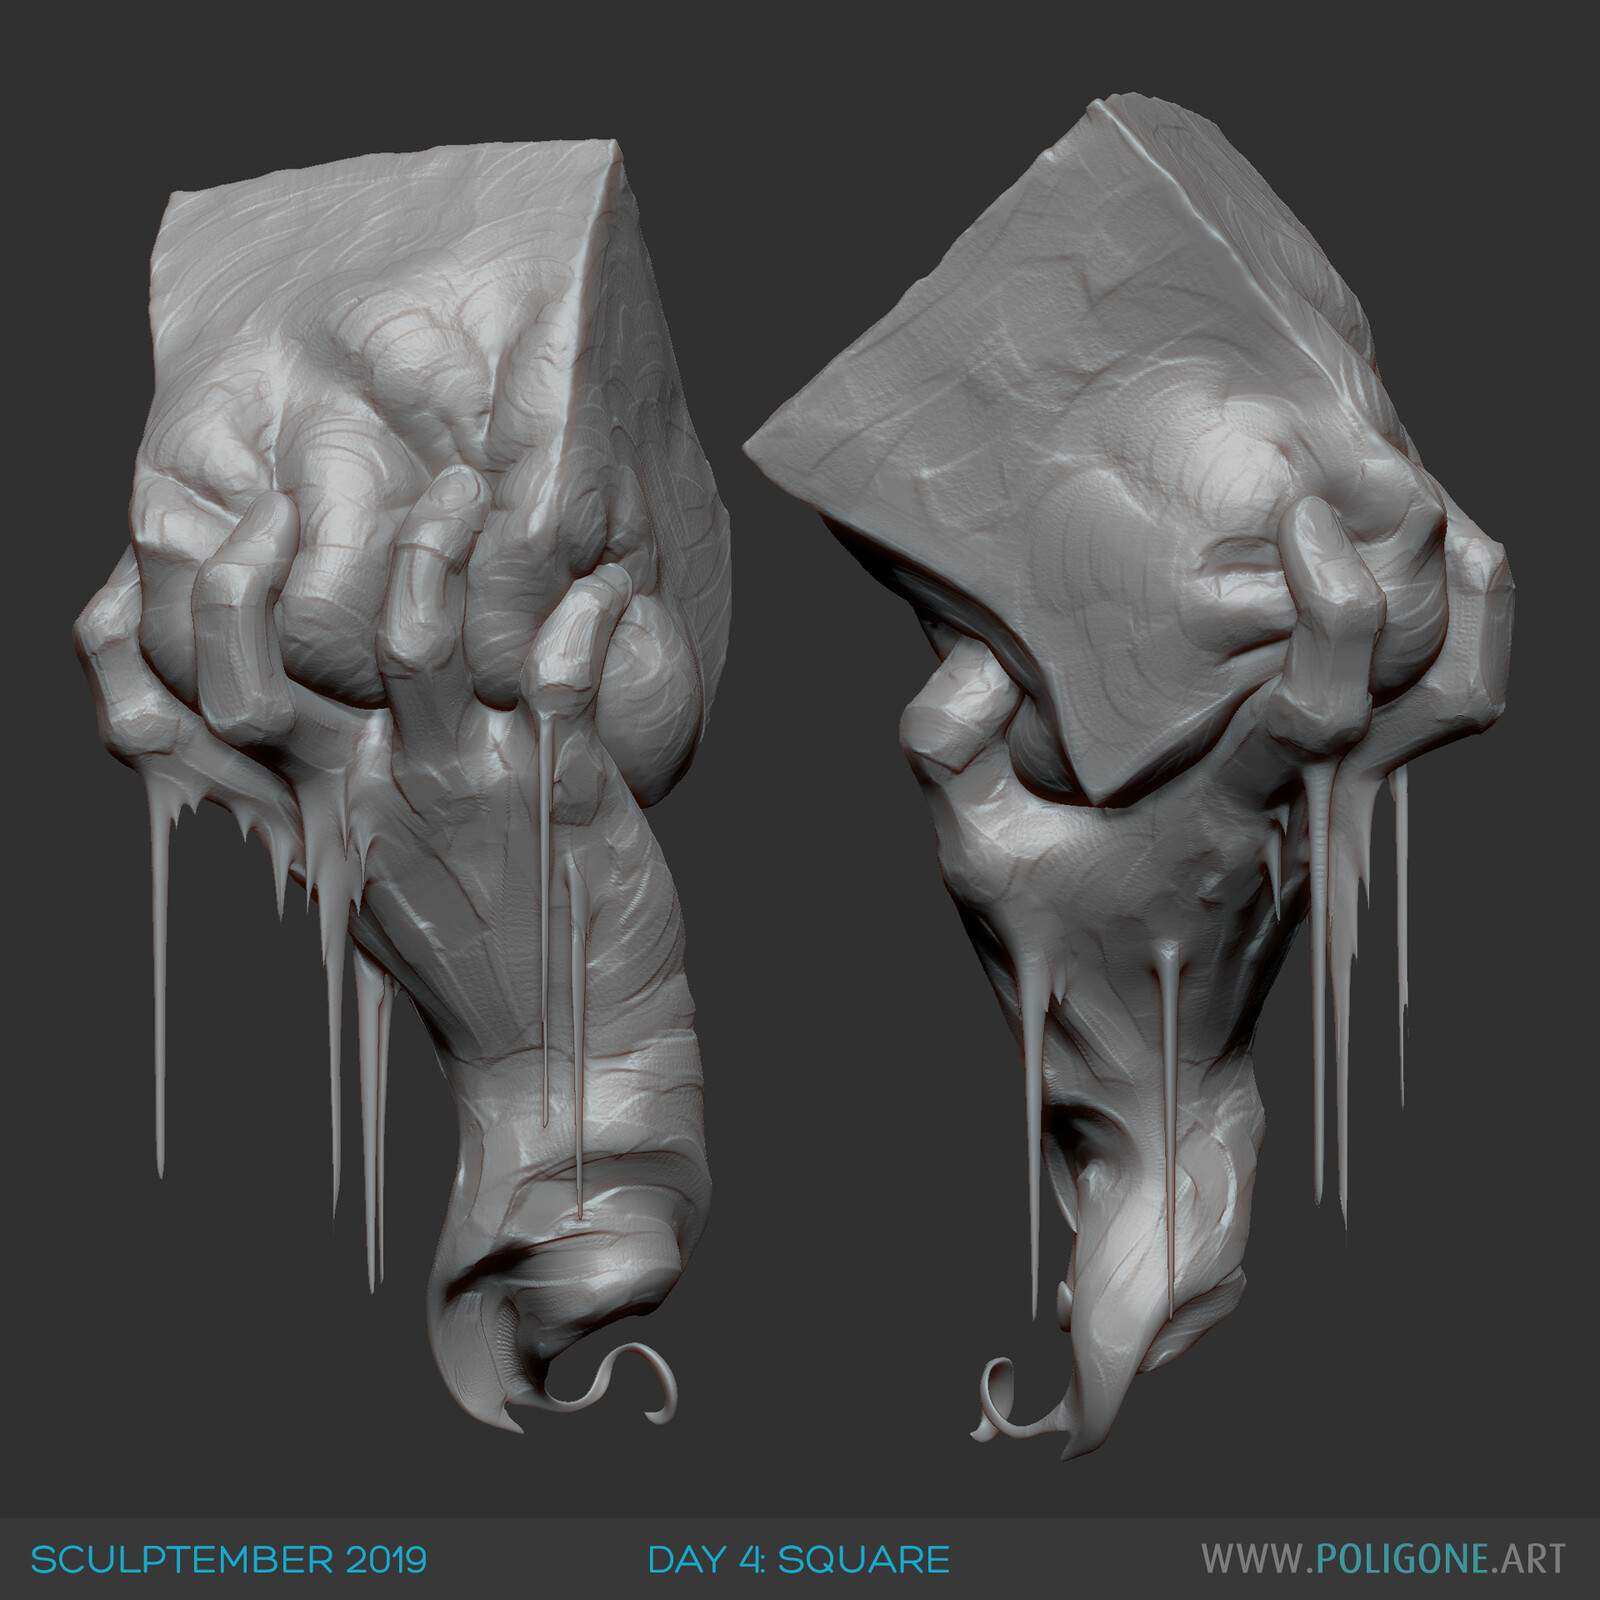 Sculptember Day 4